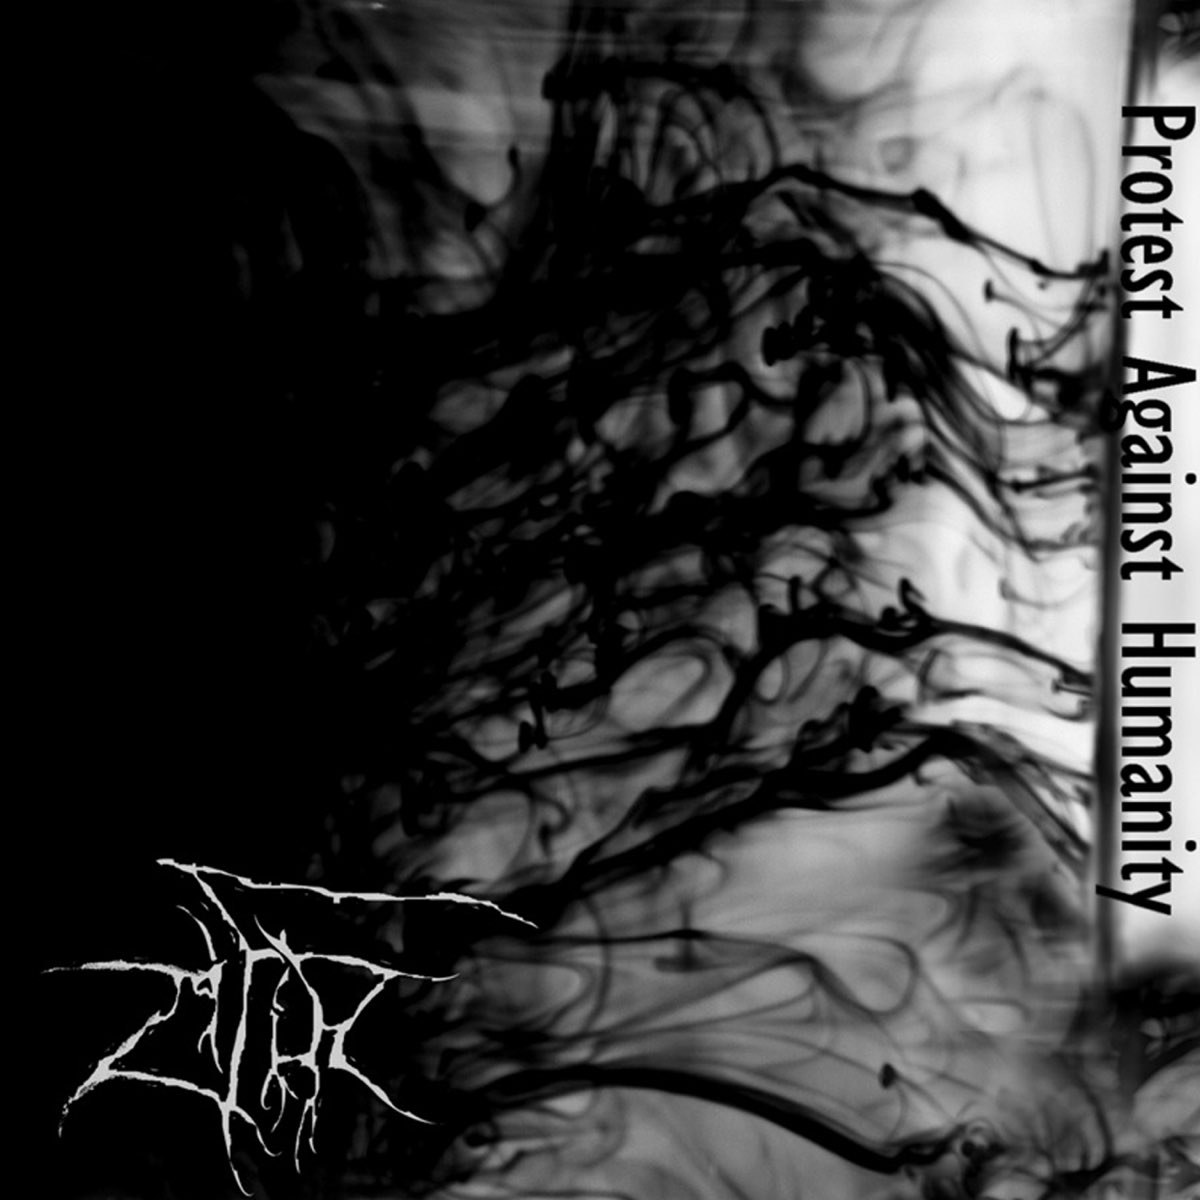 Review for Zifir - Protest Against Humanity